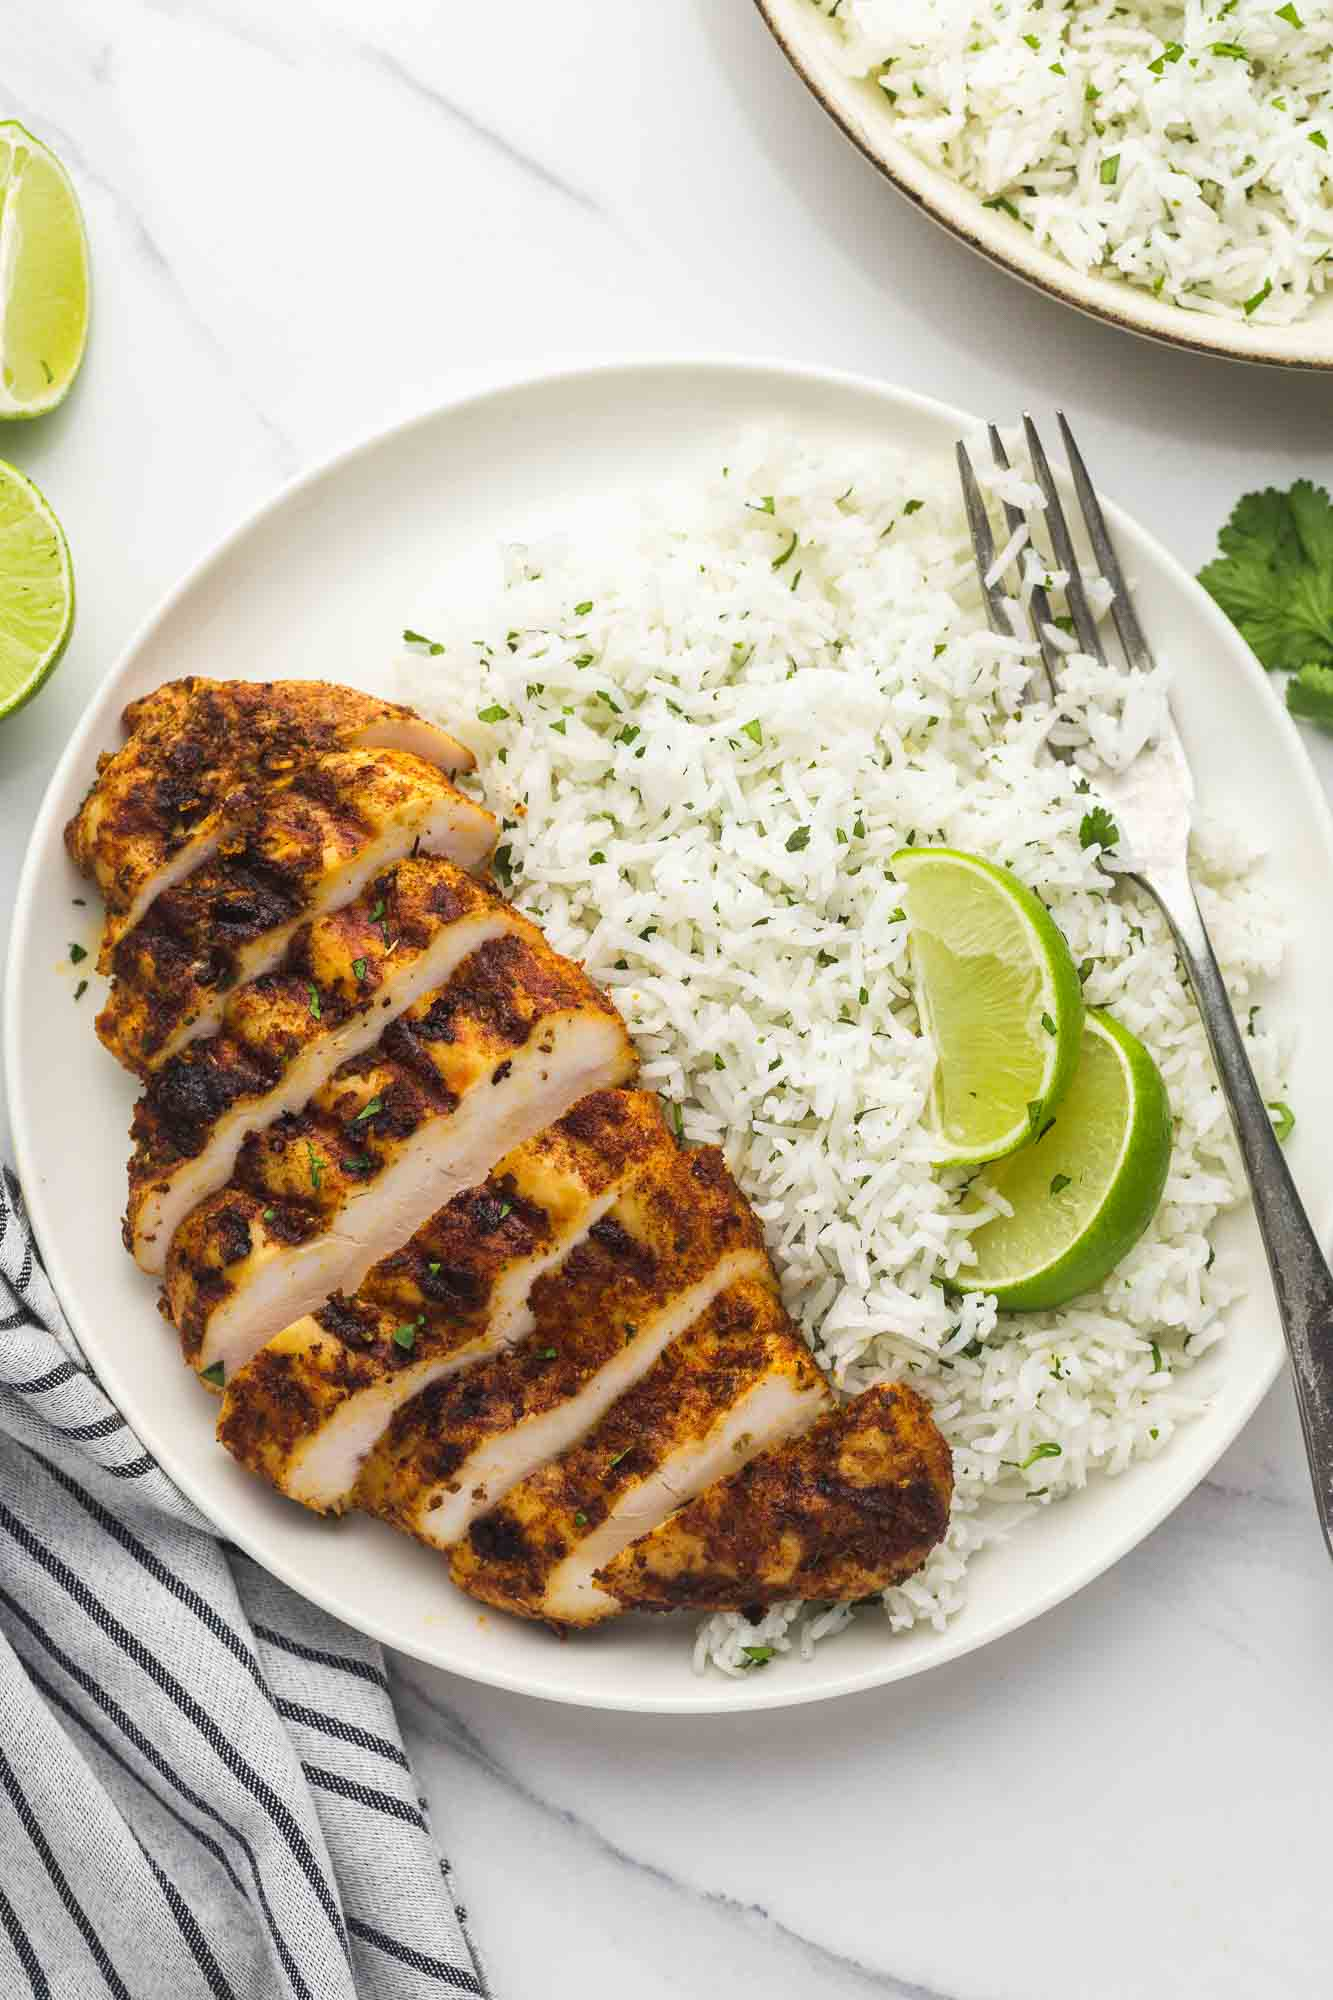 Chipotle chicken (sliced) served with cilantro lime rice in a plate with fresh lime wedges